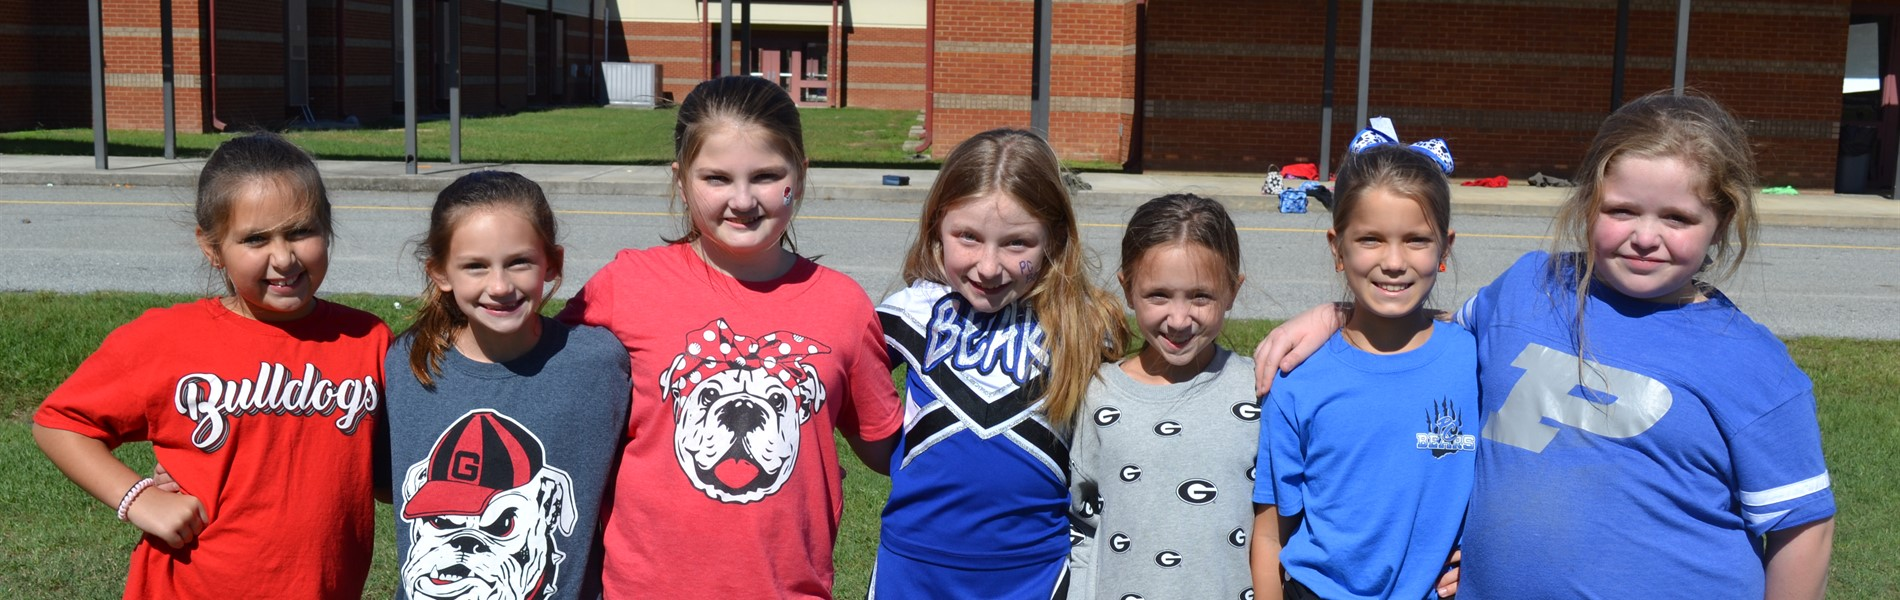 4th graders at PBIS tailgate